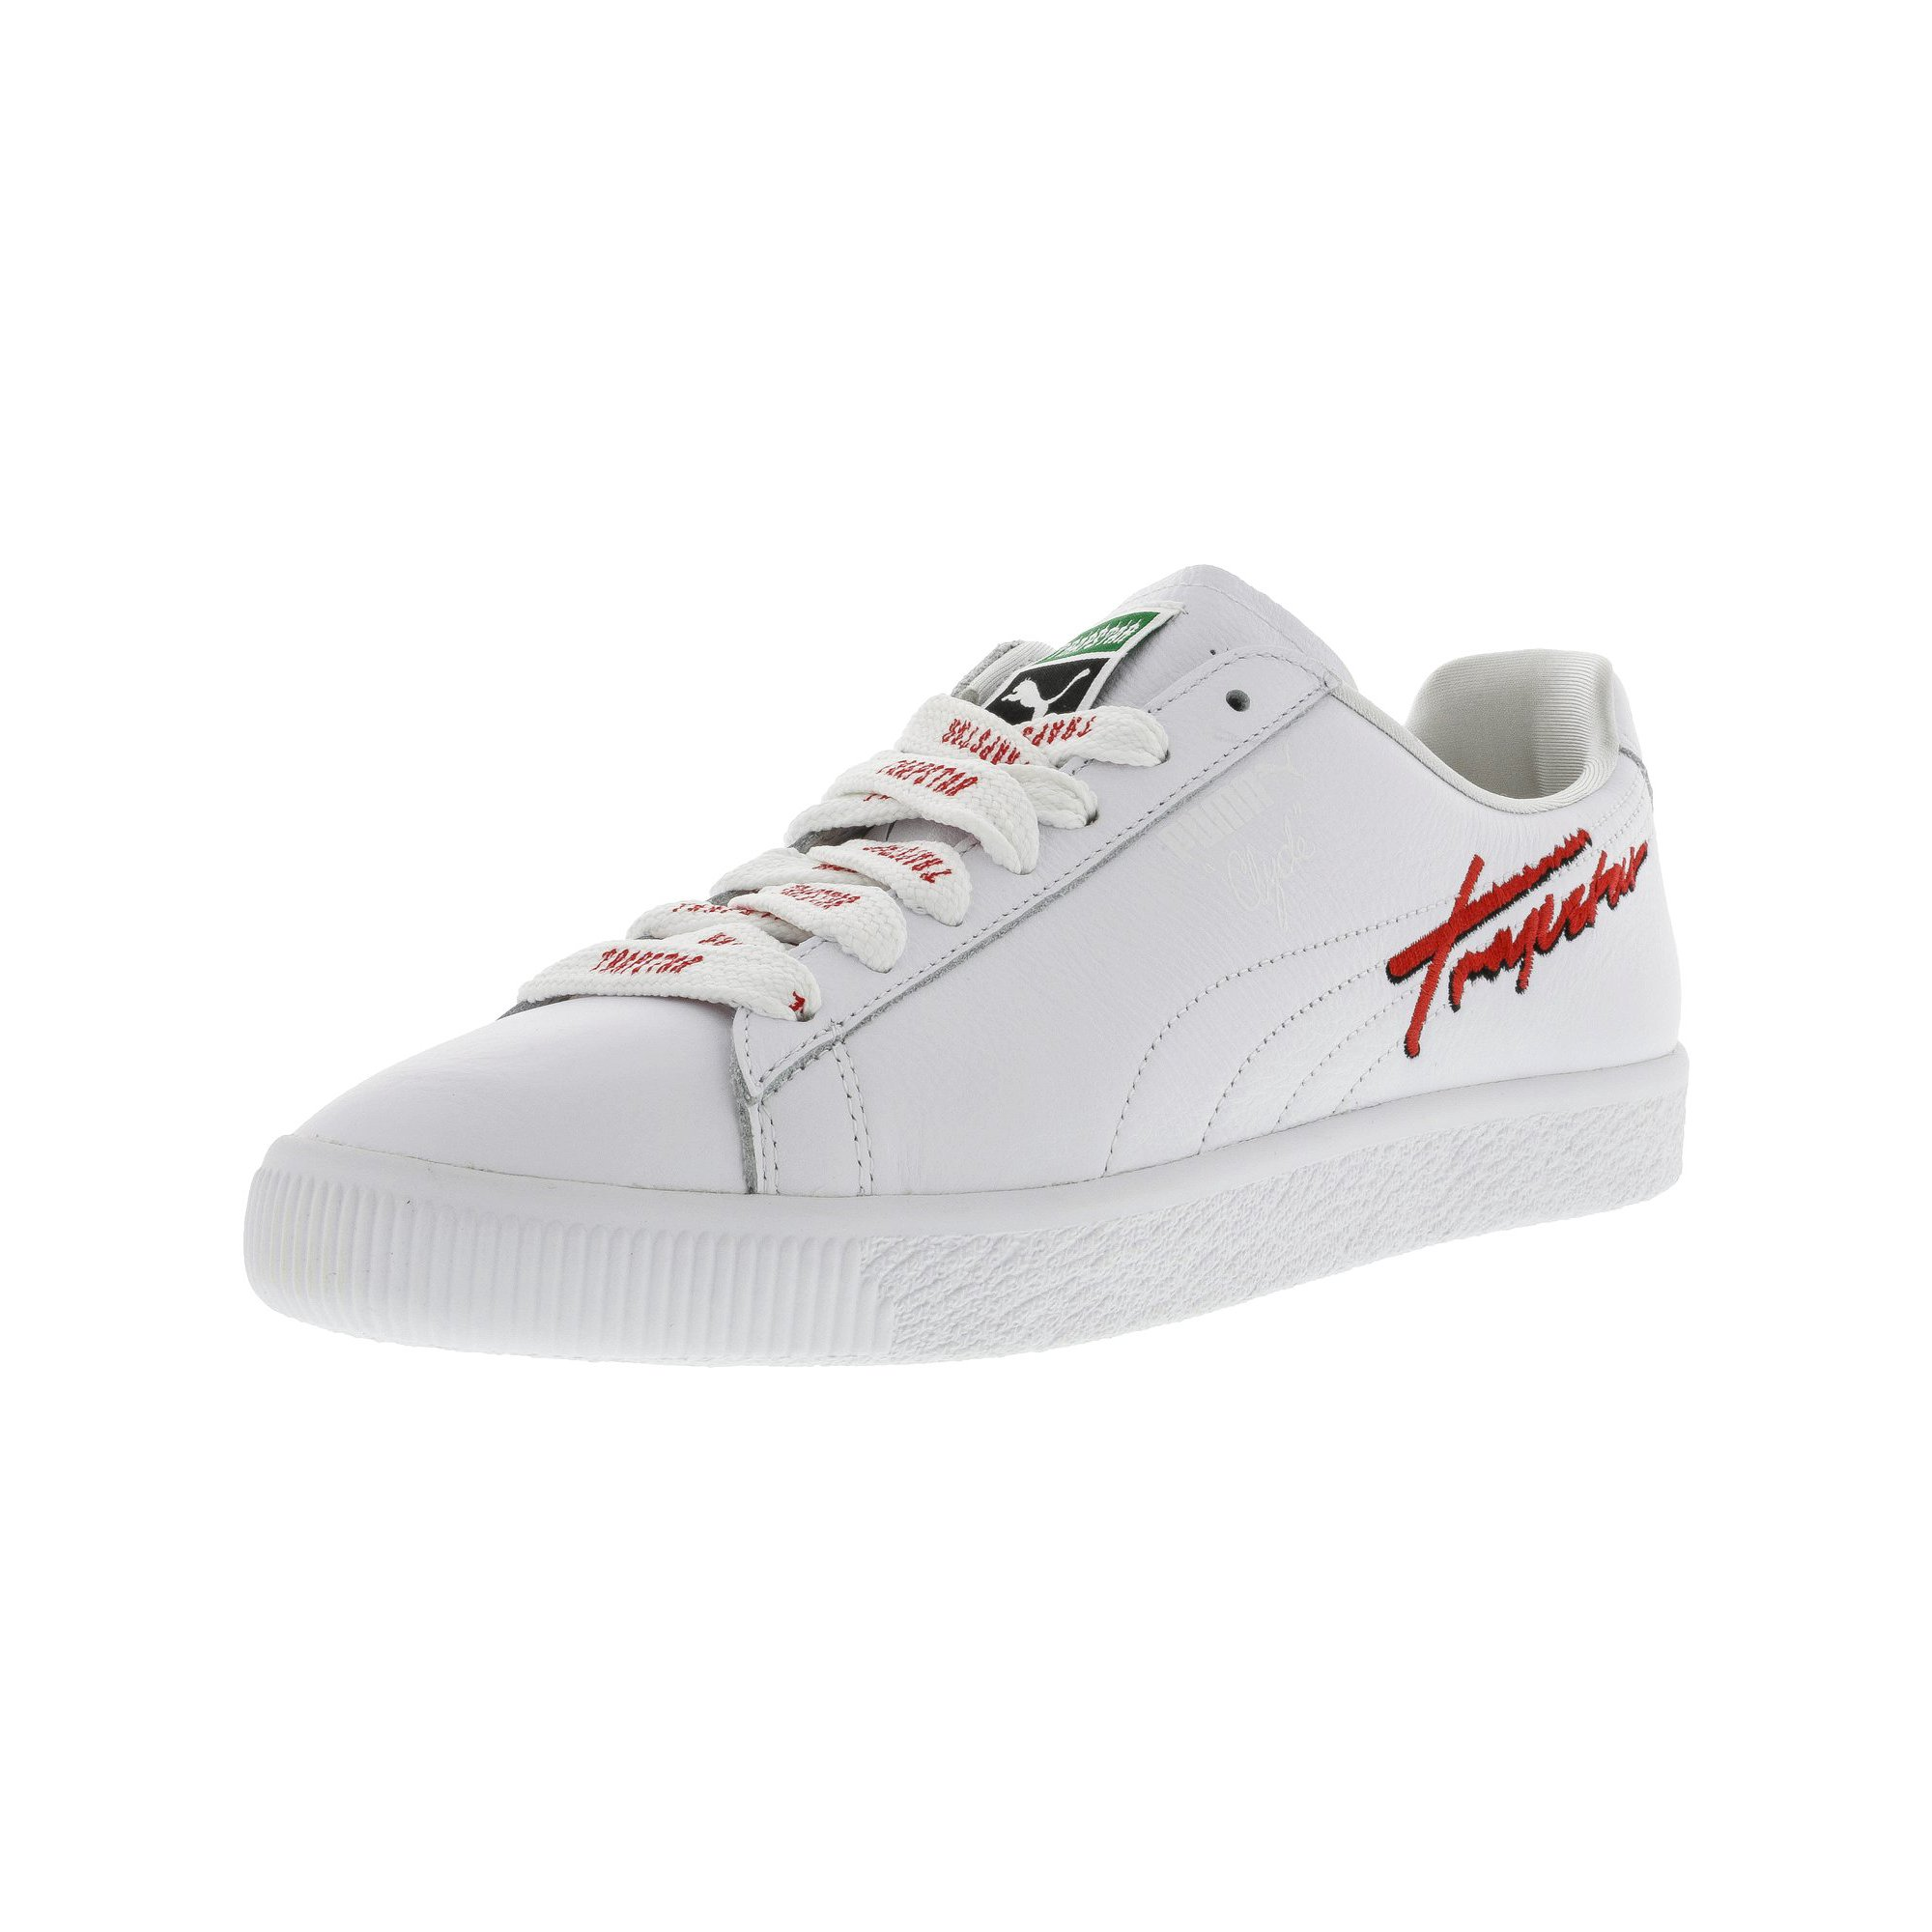 Puma Men s X Trapstar Clyde White Ankle-High Leather Fashion Sneaker - 9.5M   a48600fb4